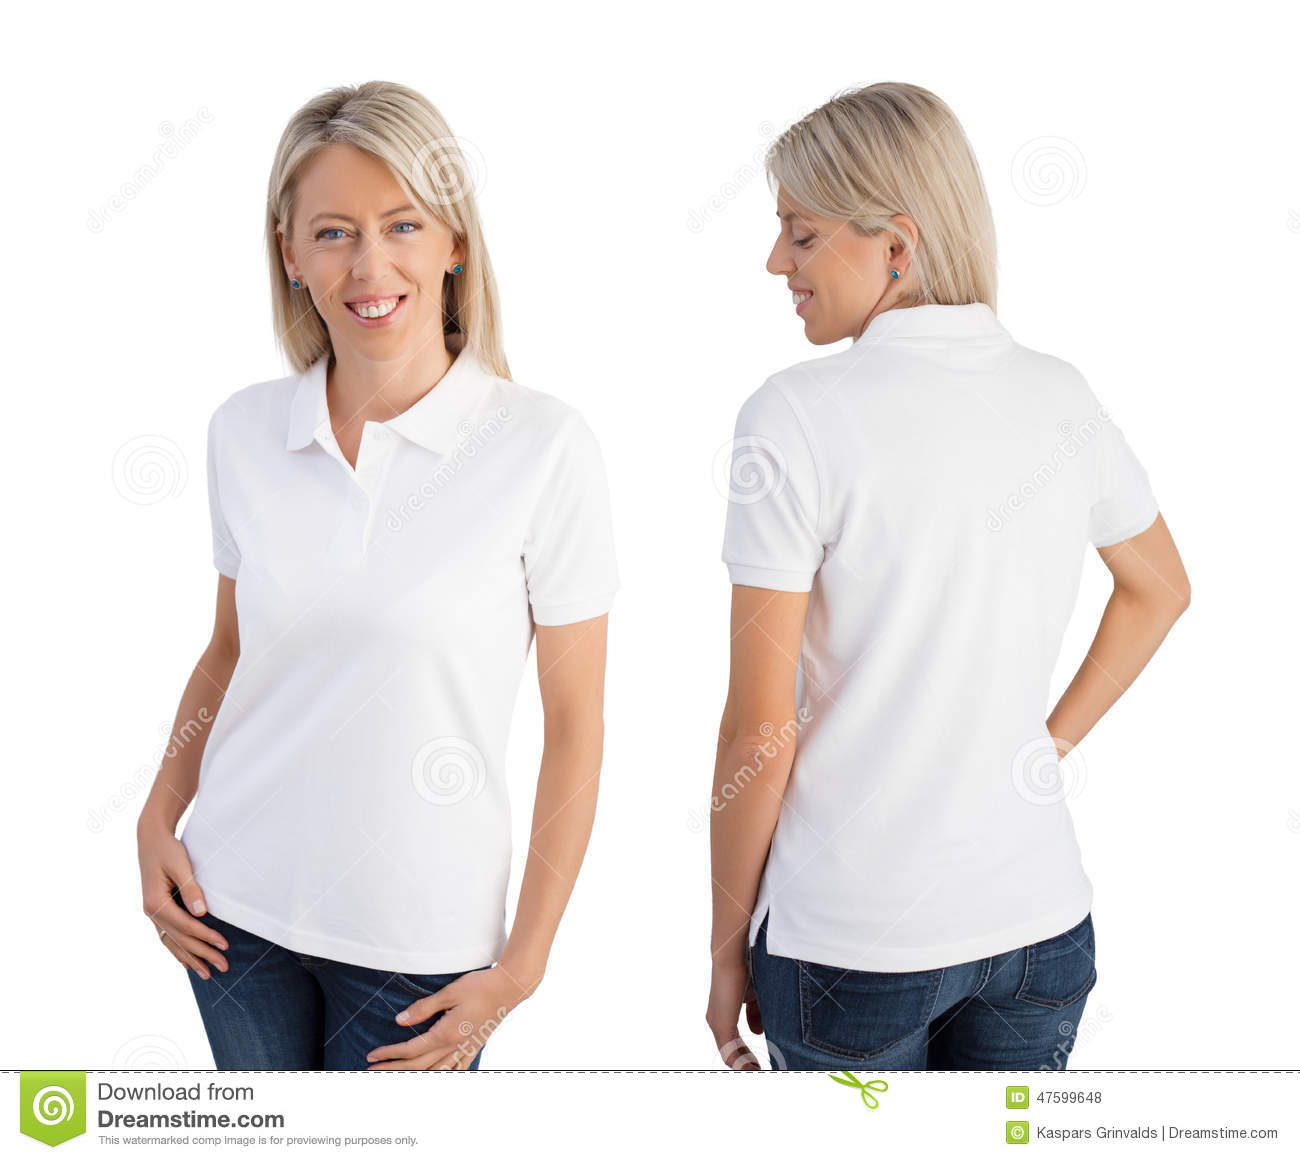 Woman wearing white polo shirt, front and back views.